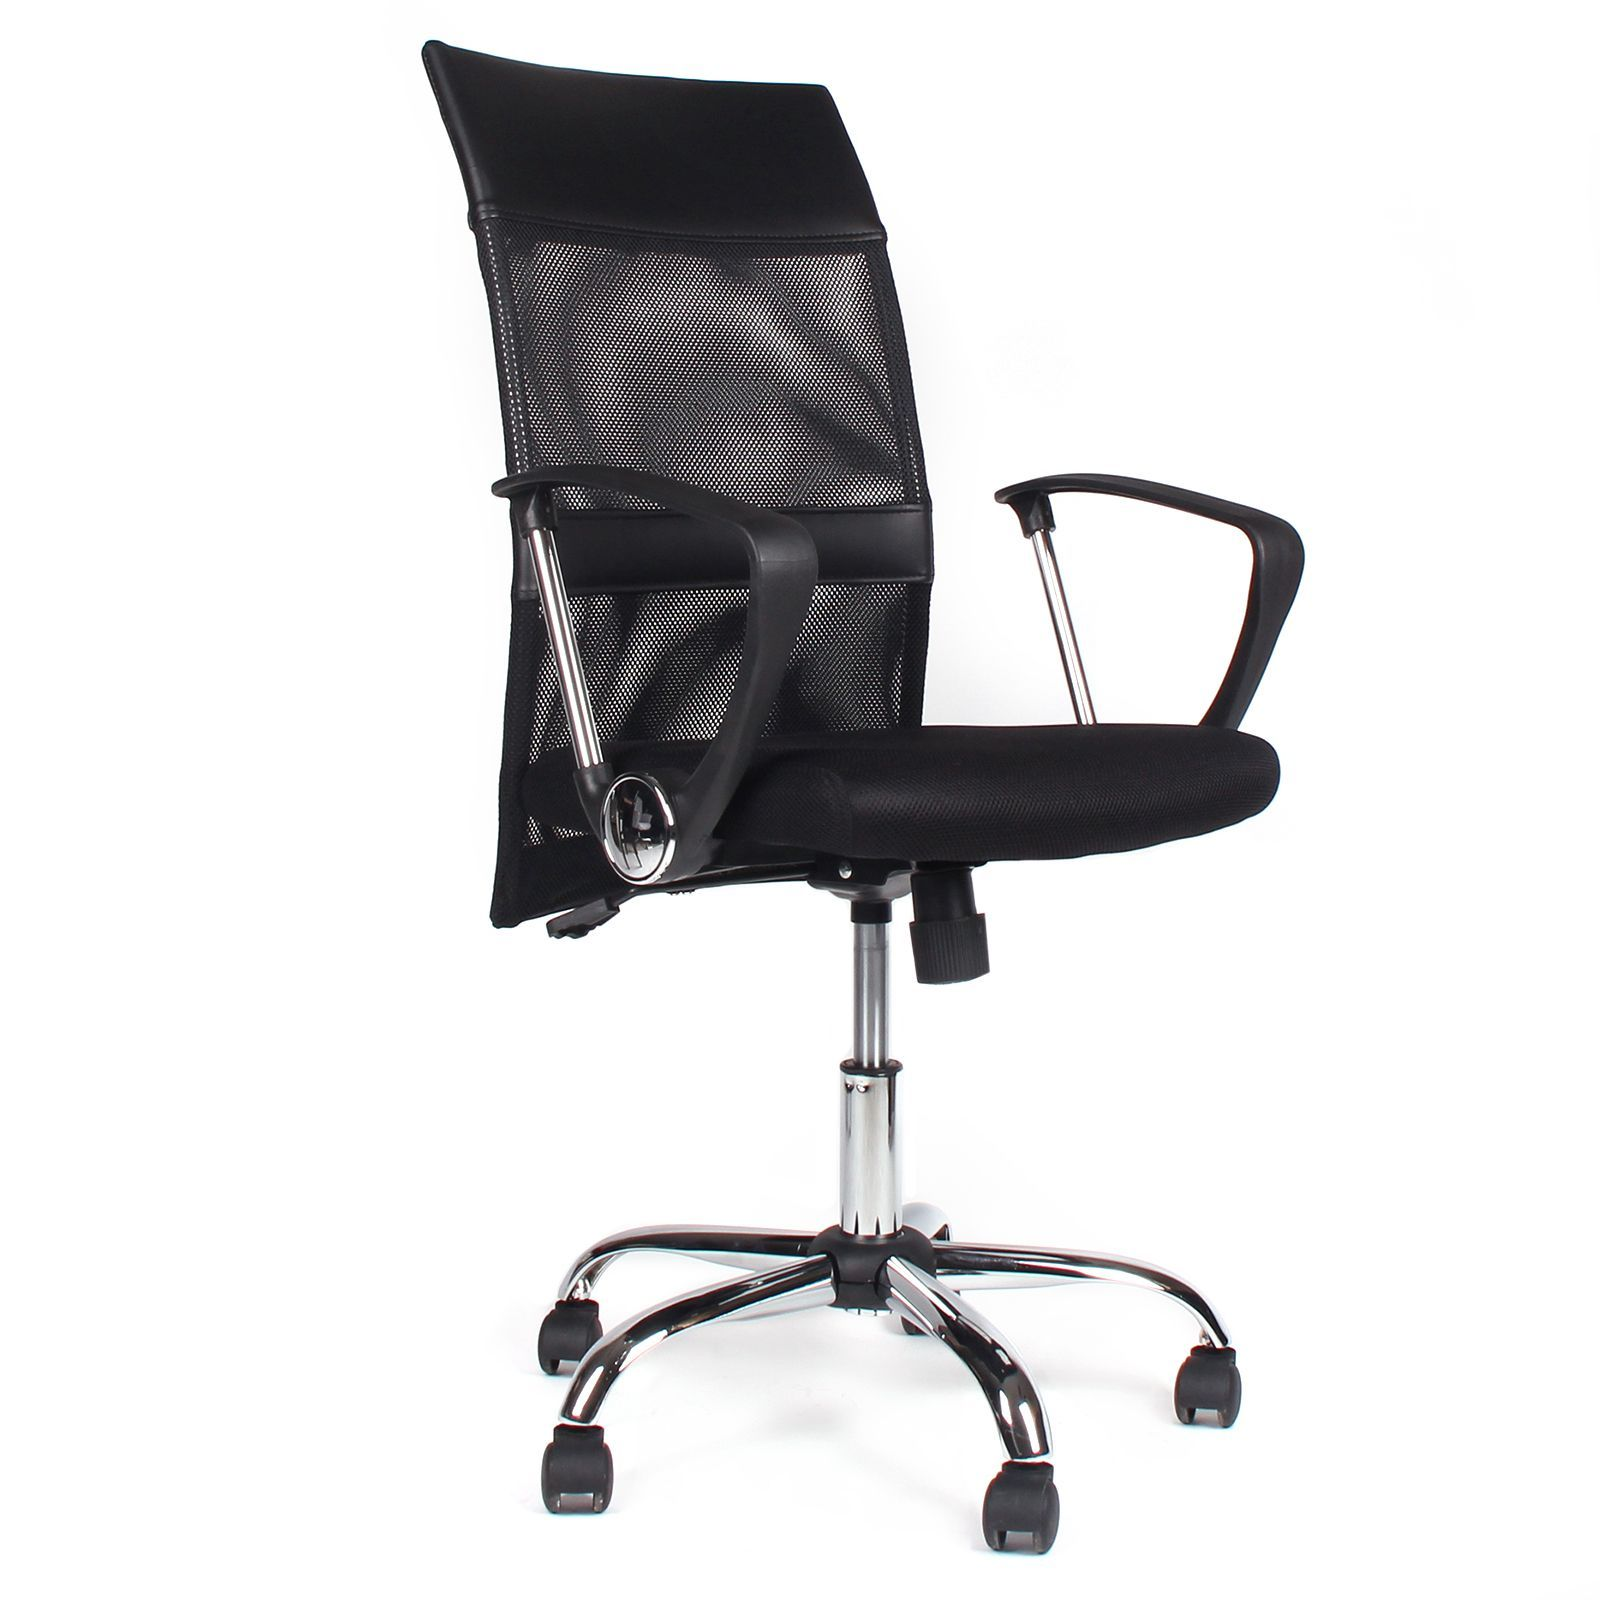 Executive high back office chair in products pinterest